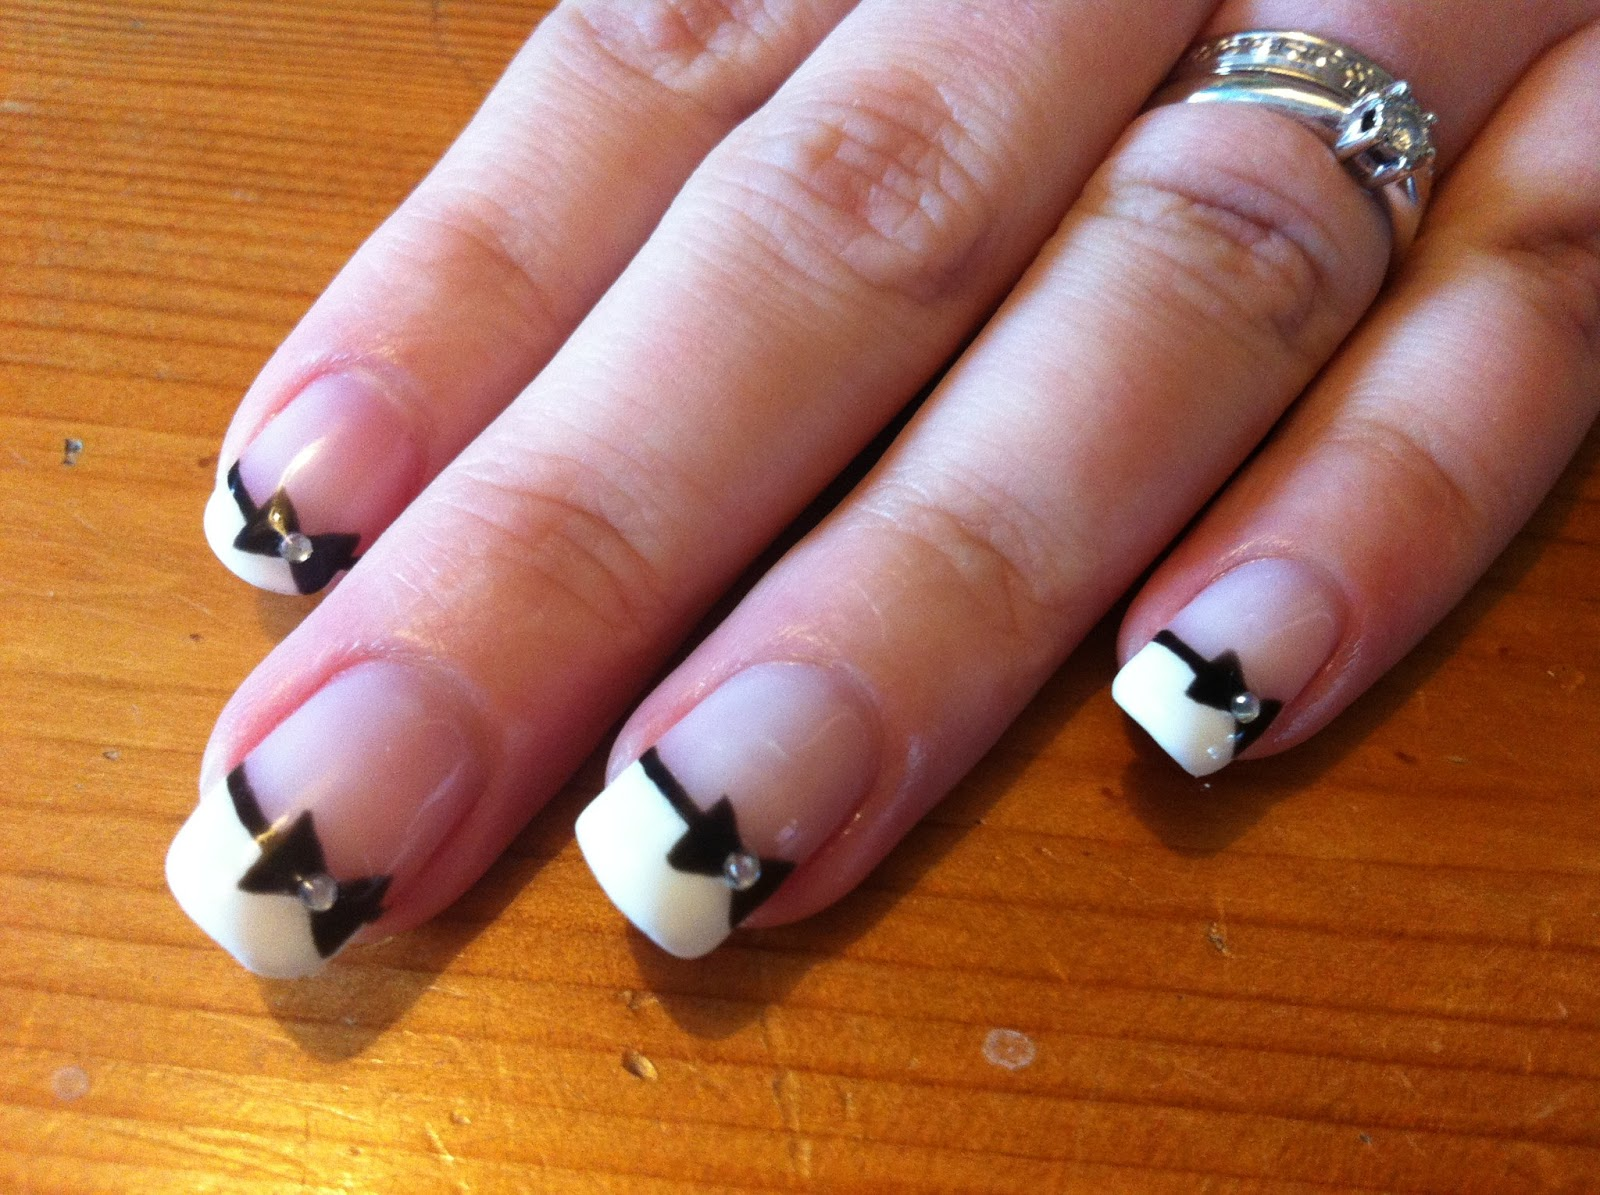 and Polish up!: CND Shellac Nail Art - French Manicure with Black Bows